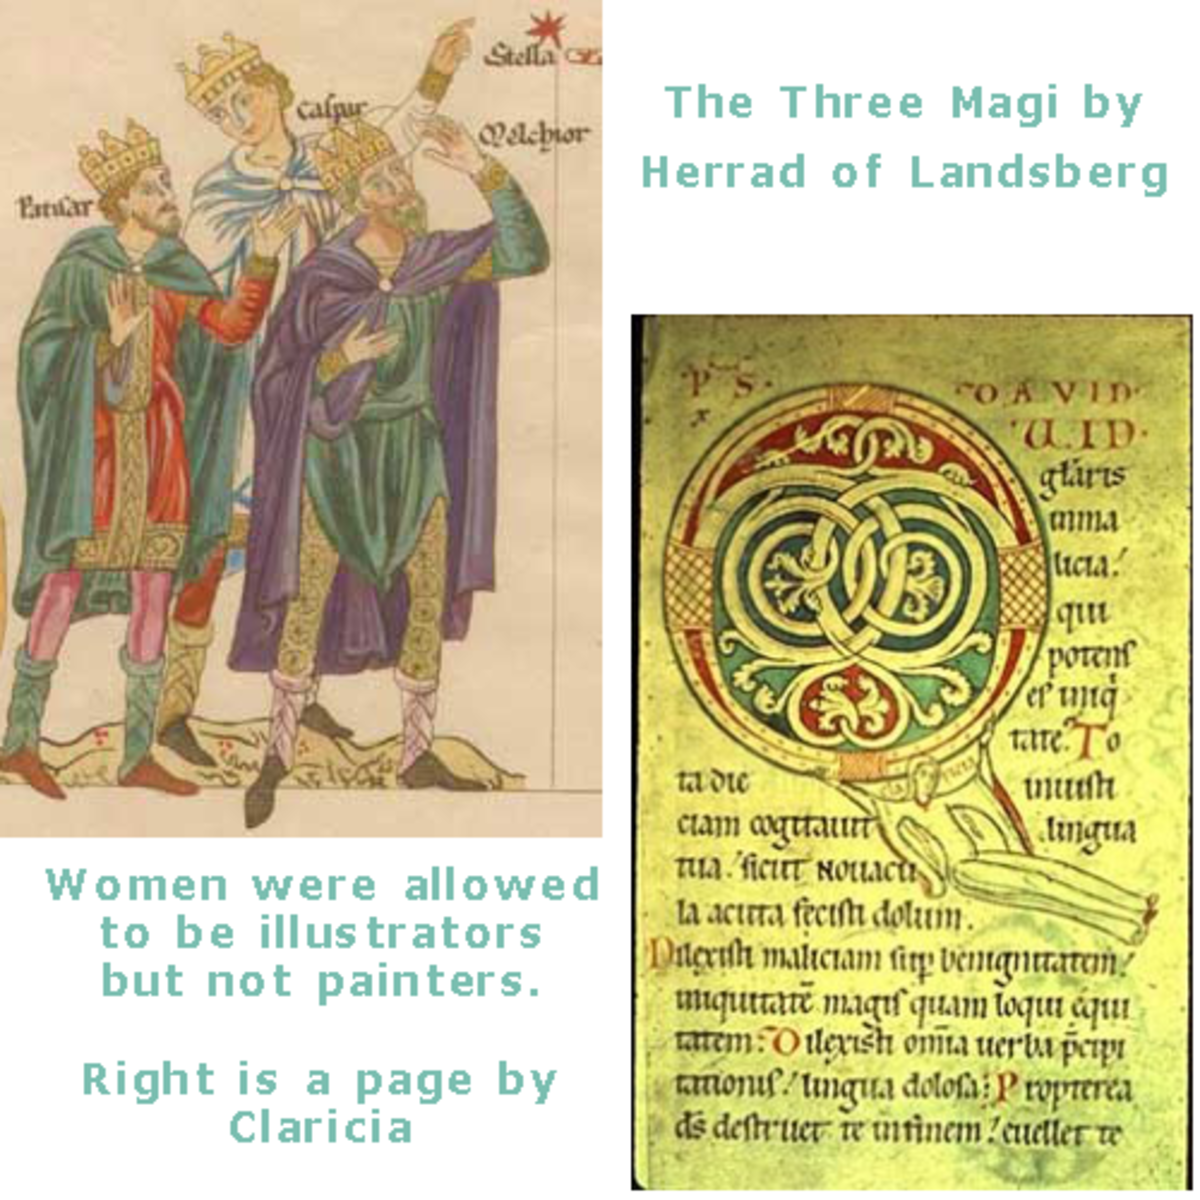 Woman as illustrators in the Medieval period.